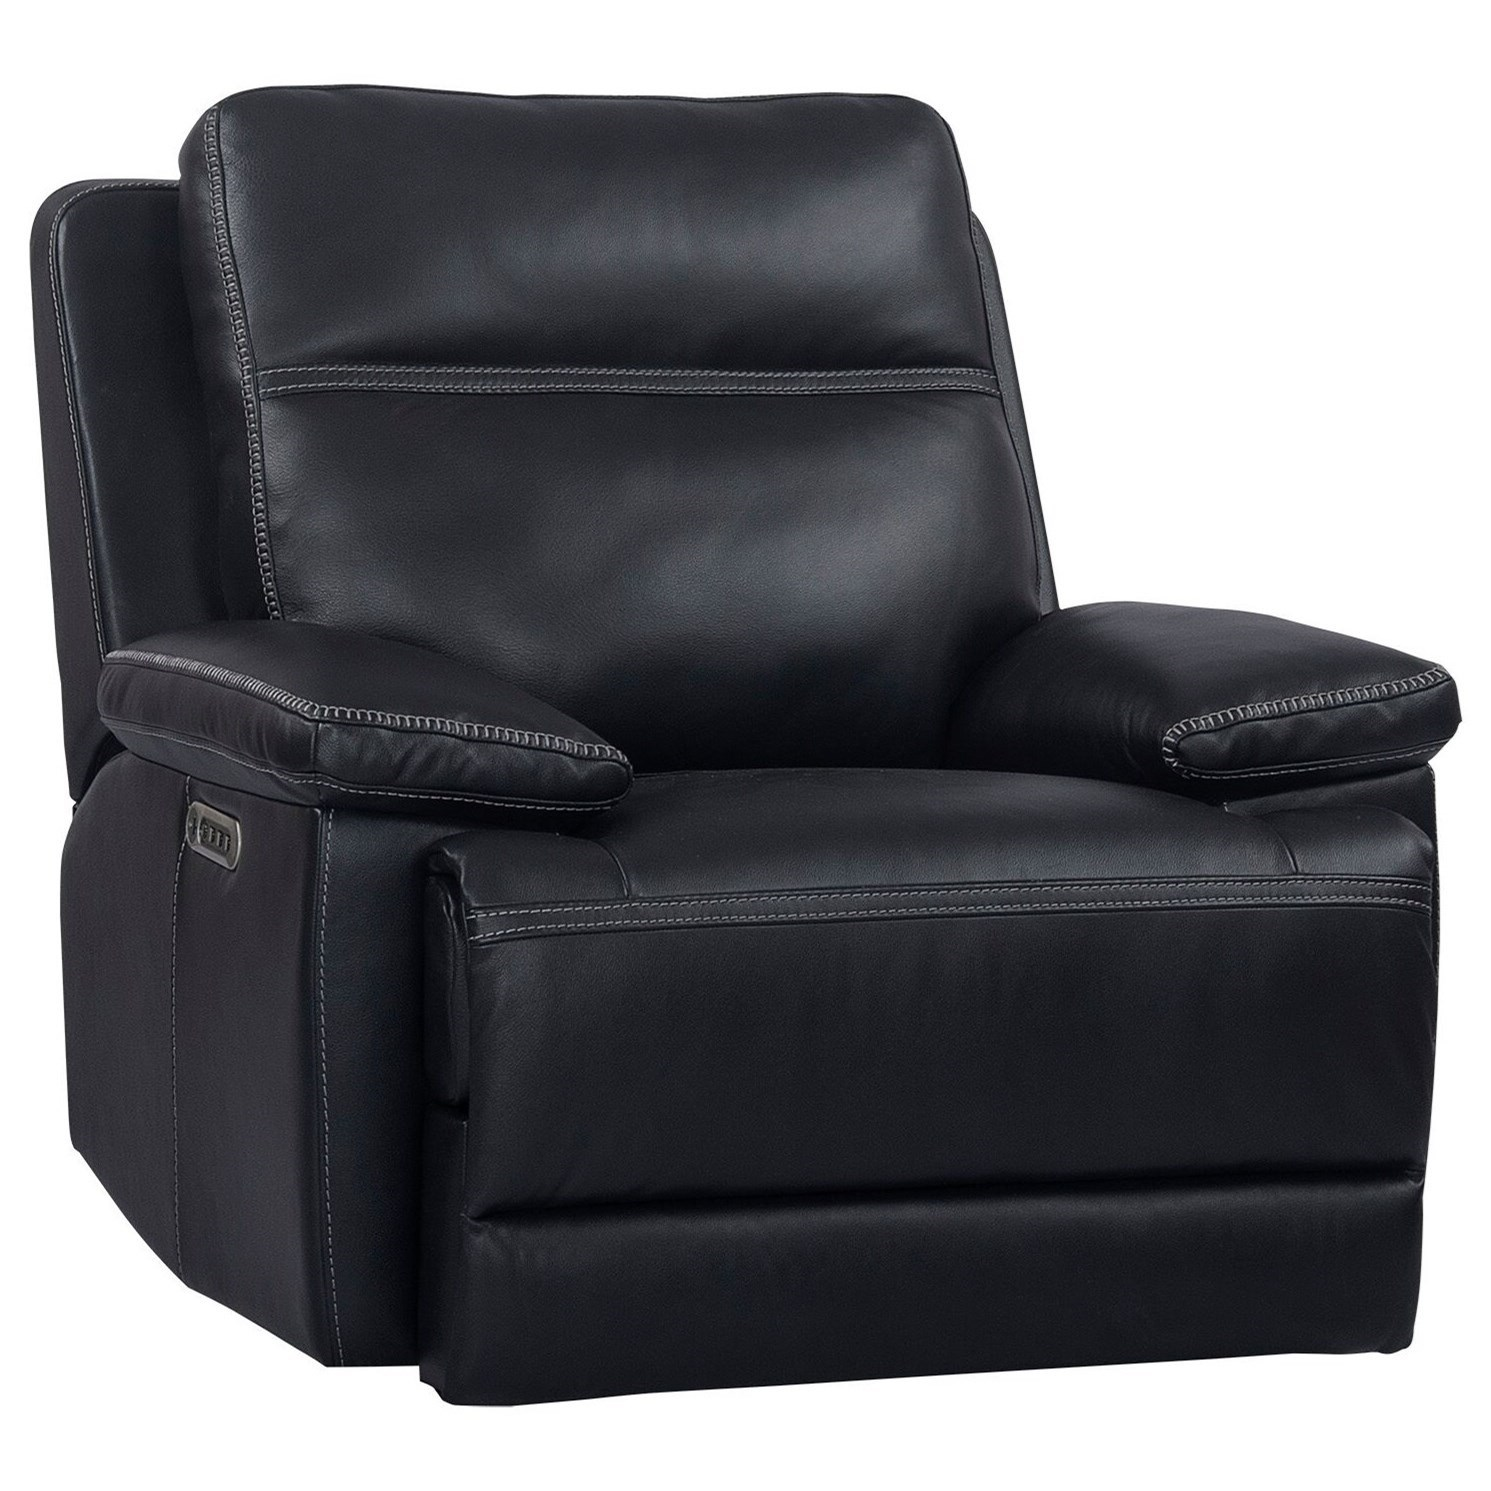 Power Recliner with Adjustable Headrest